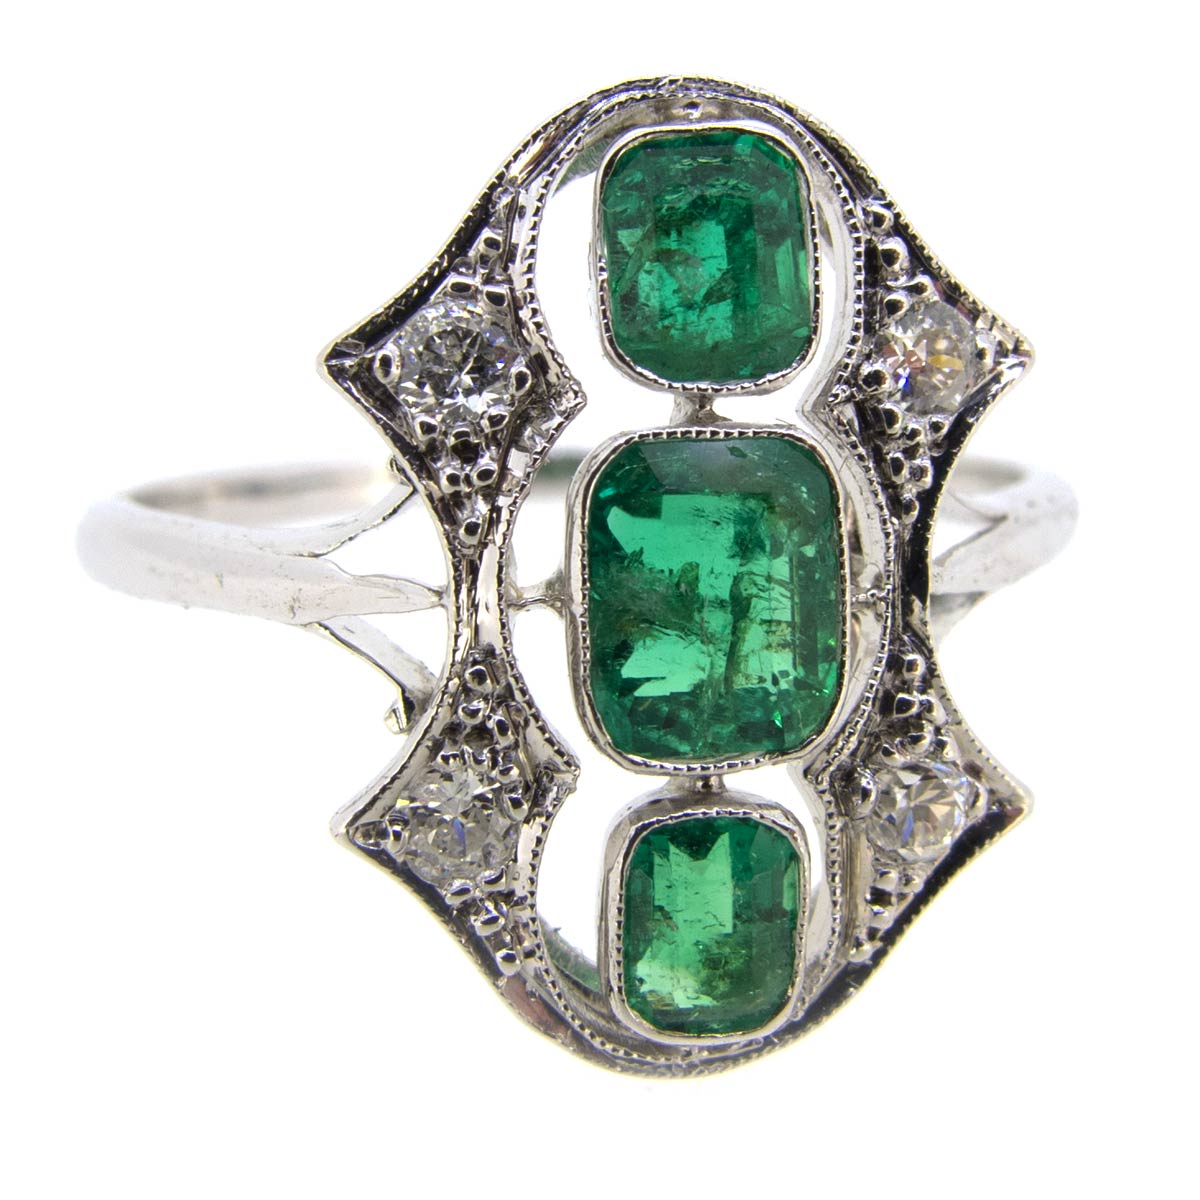 Emerald & Diamond Tablet Ring